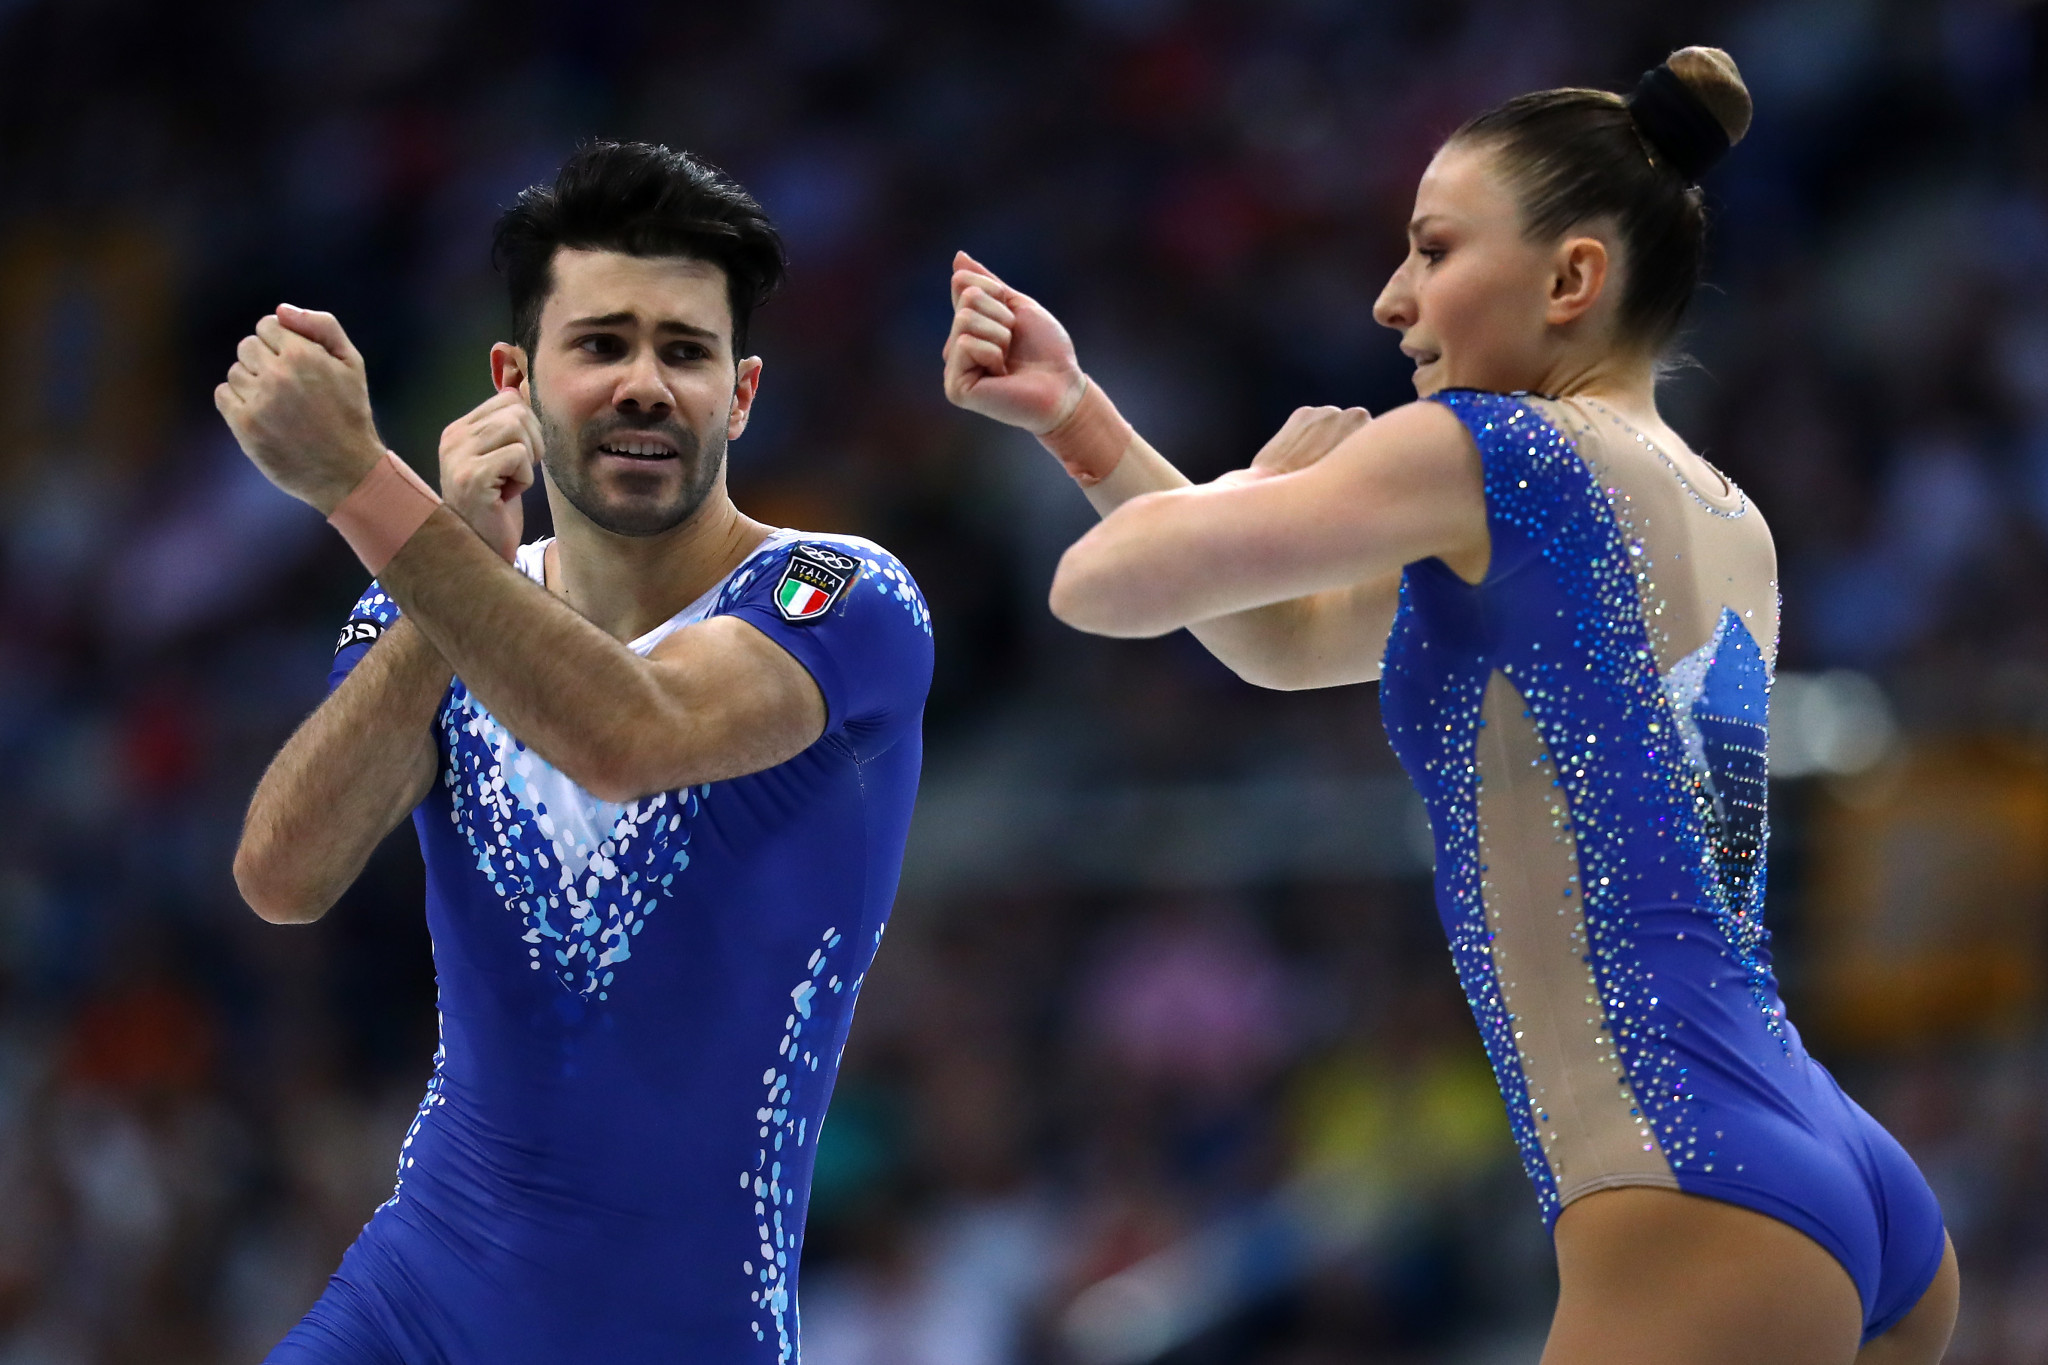 Italy's Michela Castoldi and Davide Donati won the mixed pairs aerobic gymnastics ©Getty Images